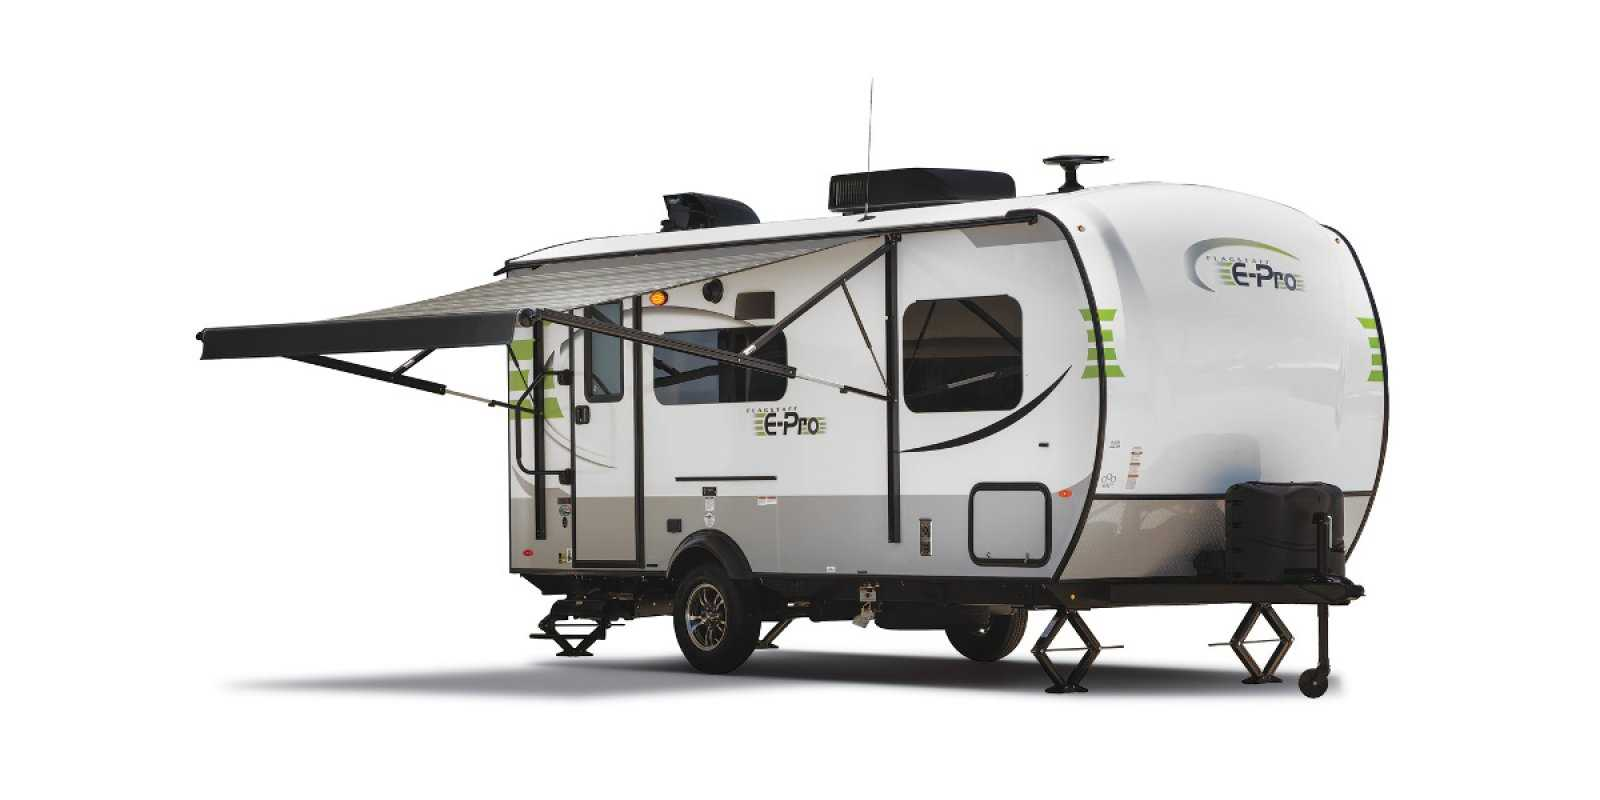 Flagstaff E-Pro    Th Best Selling Mini Trailers You Can Buy!